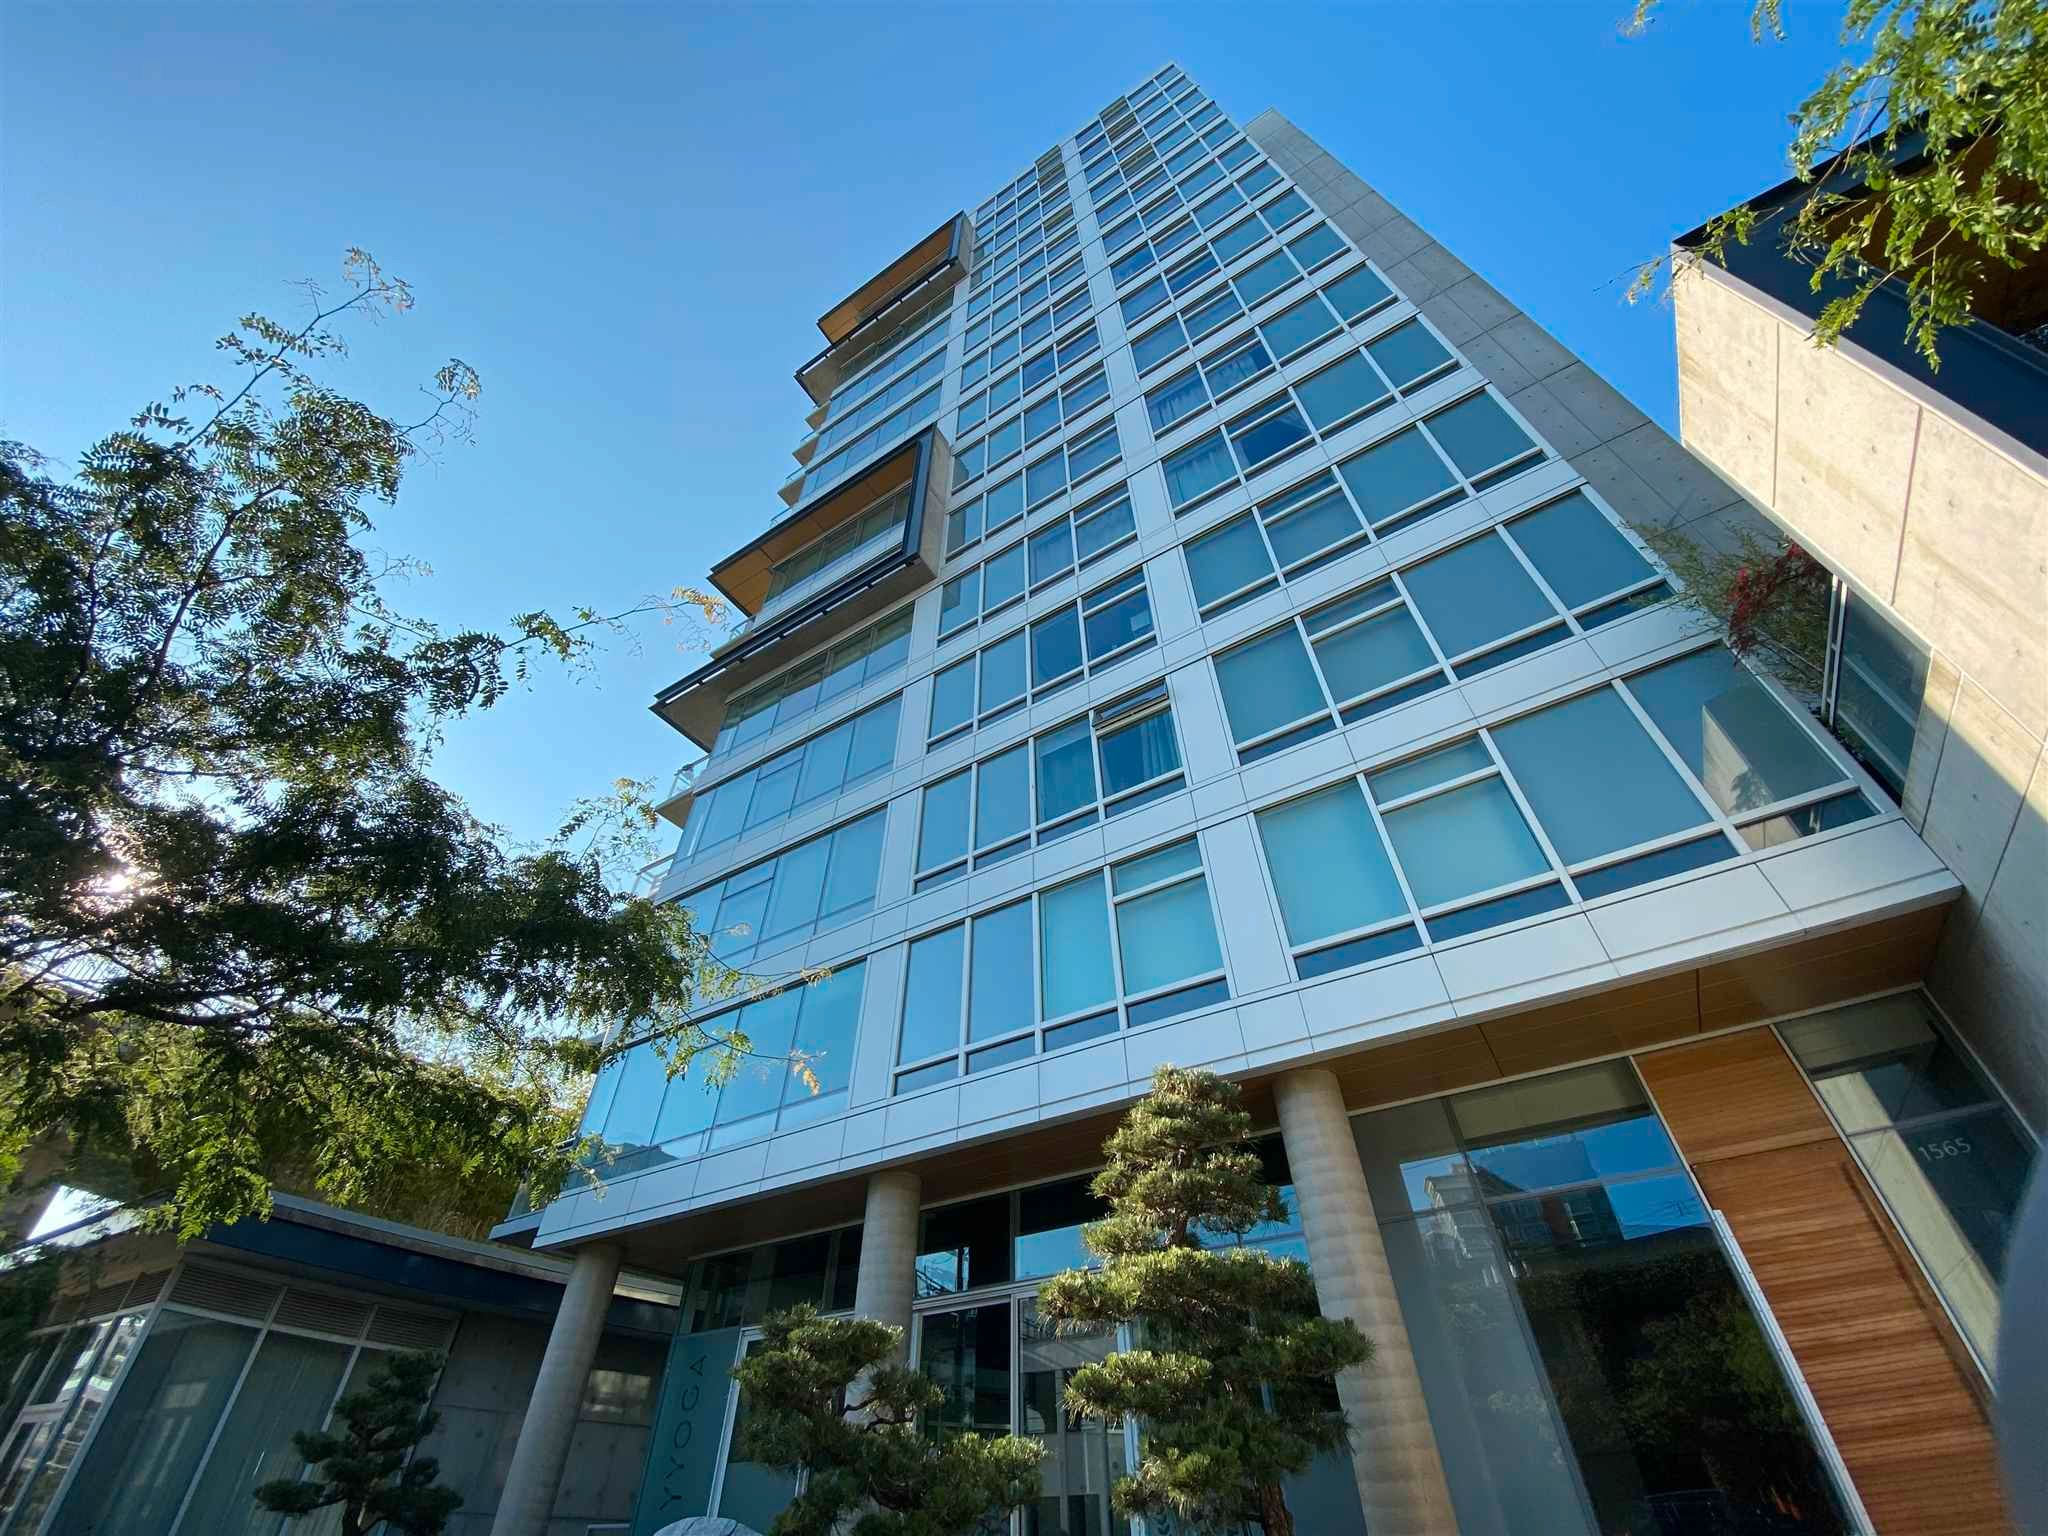 """Main Photo: 1102 1565 W 6TH Avenue in Vancouver: False Creek Condo for sale in """"6TH & FIR"""" (Vancouver West)  : MLS®# R2602181"""